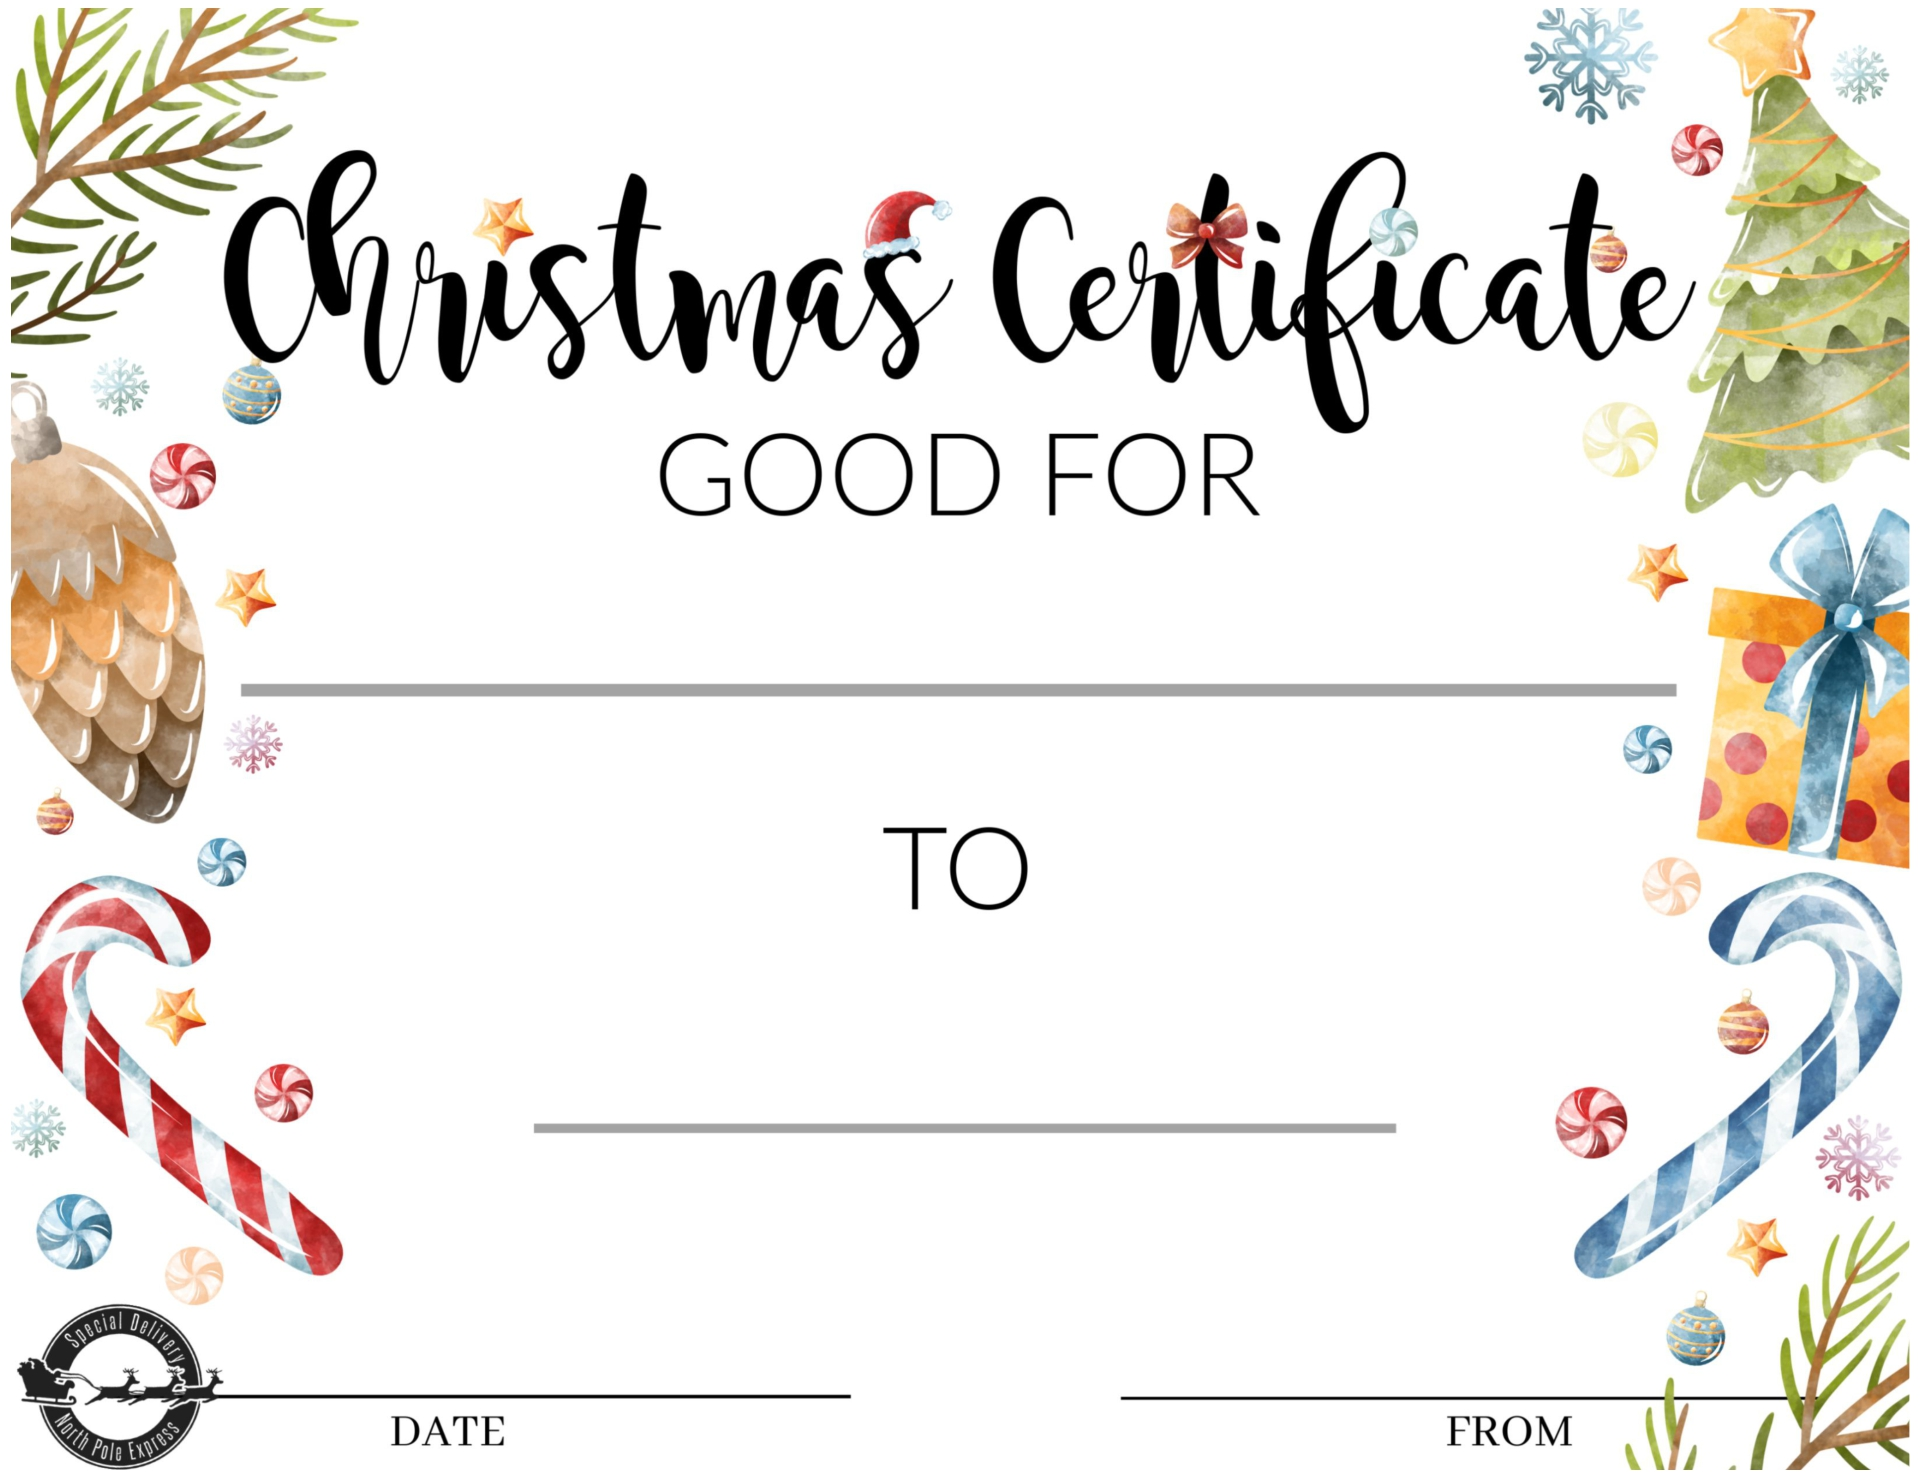 massage gift certificate template free download - 5 best images of printable massage gift certificate